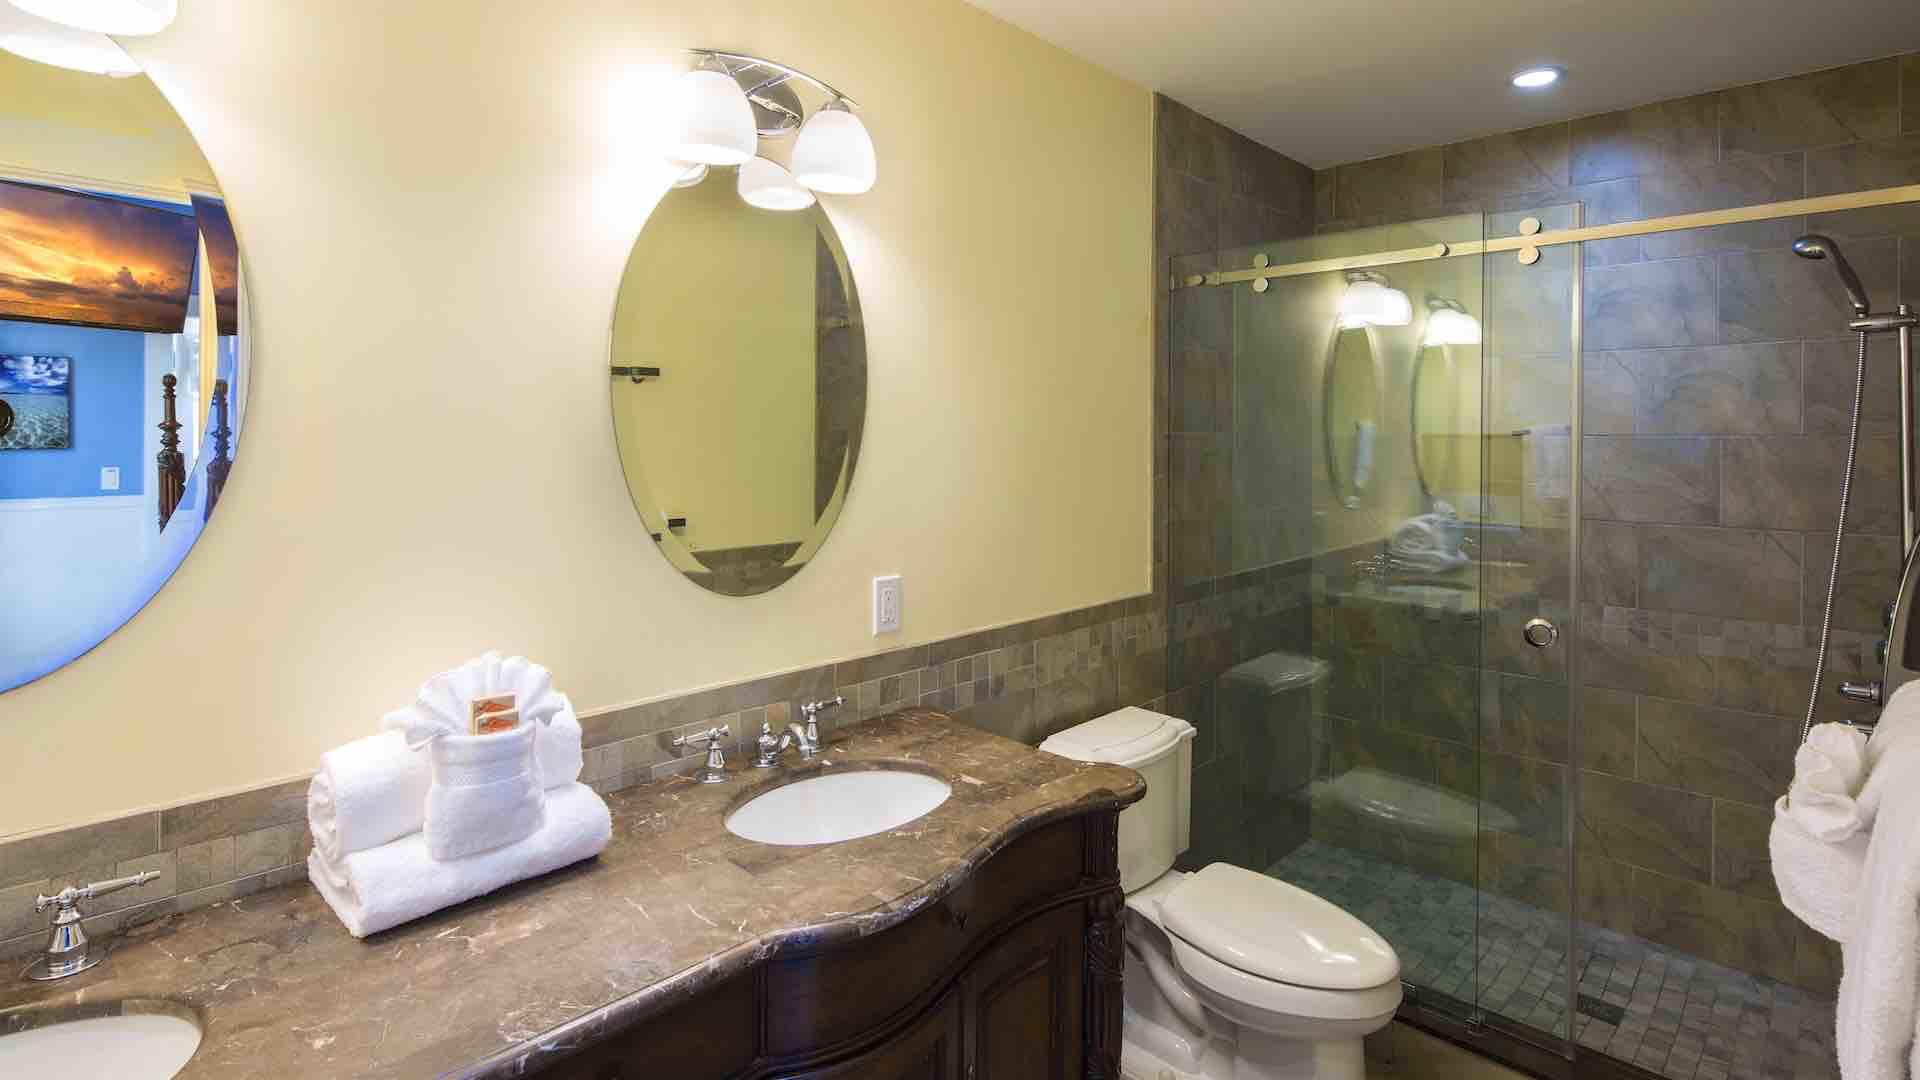 The master bathroom is en suite with twin vanities and a large glass shower...